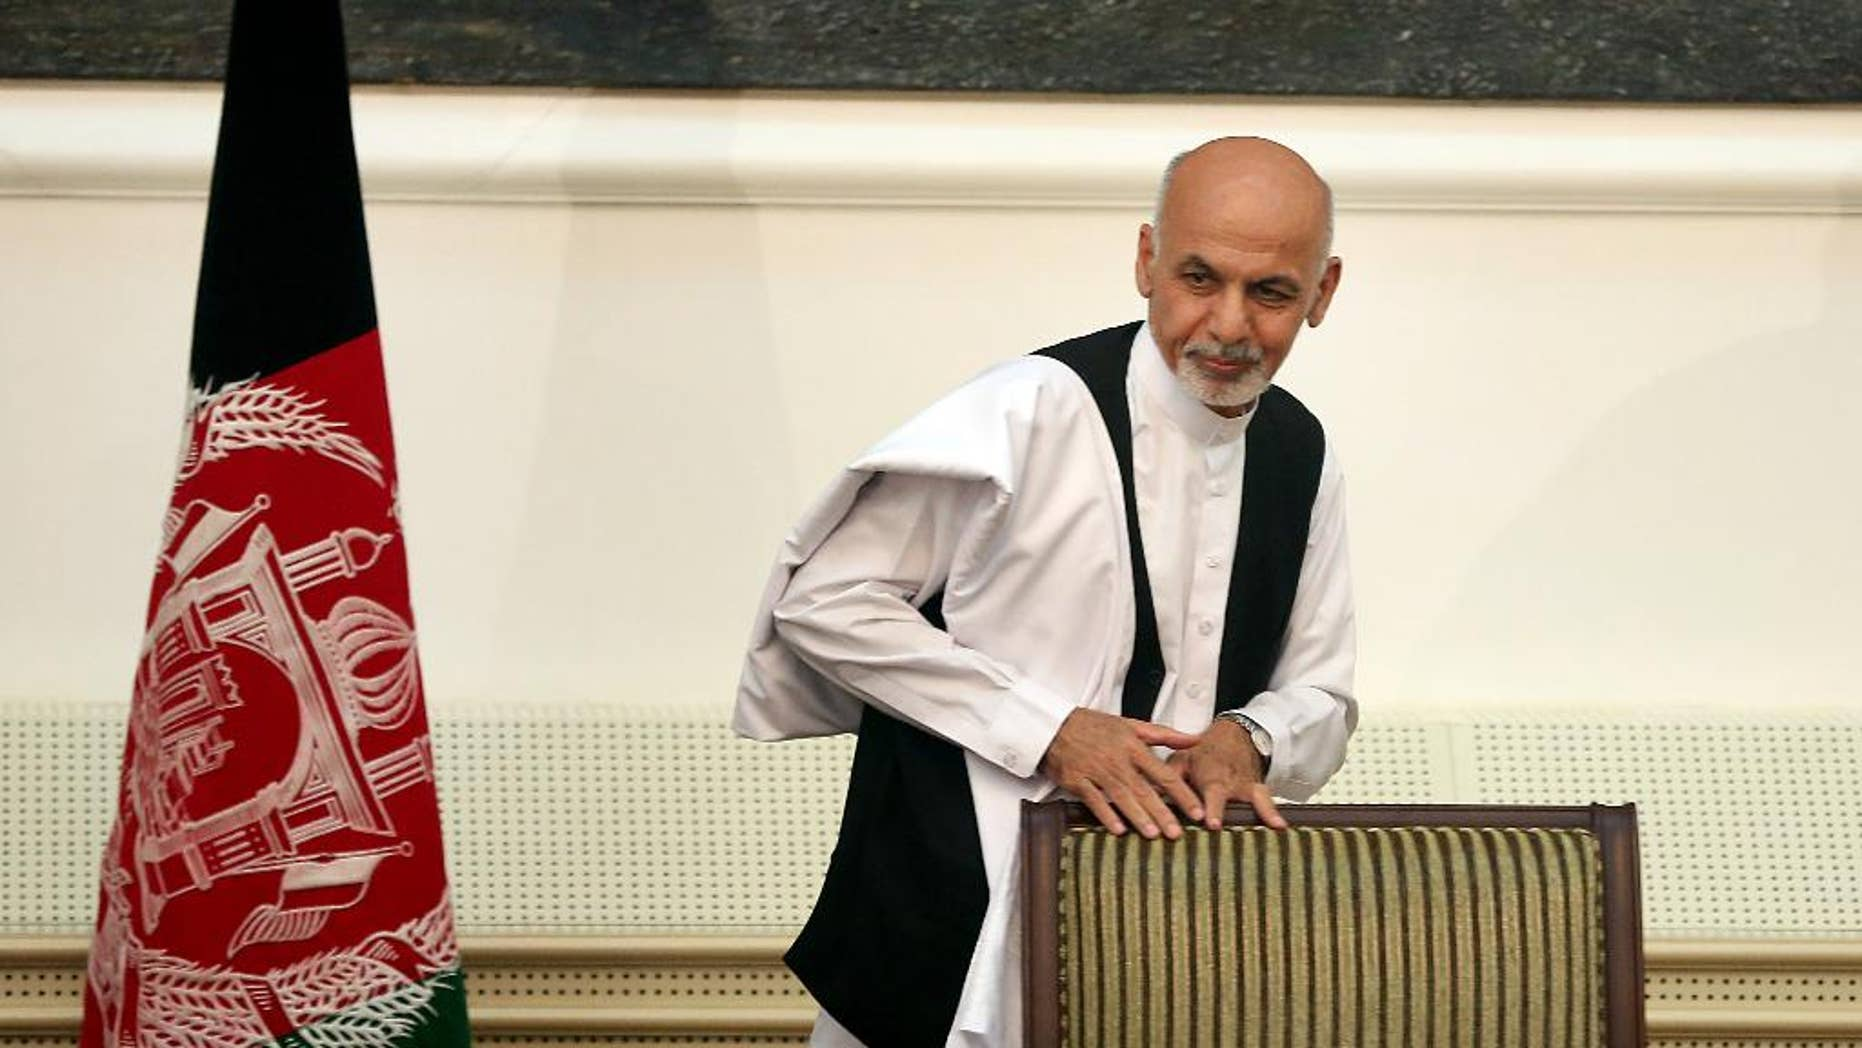 Afghanistan's presidential election candidate Ashraf Ghani Ahmadzai leaves after signing a power-sharing deal at the presidential palace in Kabul, Afghanistan, Sunday, Sept. 21, 2014. Ahmadzai, who will become president, and Abdullah Abdullah signed the national unity government deal as outgoing President Hamid Karzai watched.(AP Photo/Massoud Hossaini)